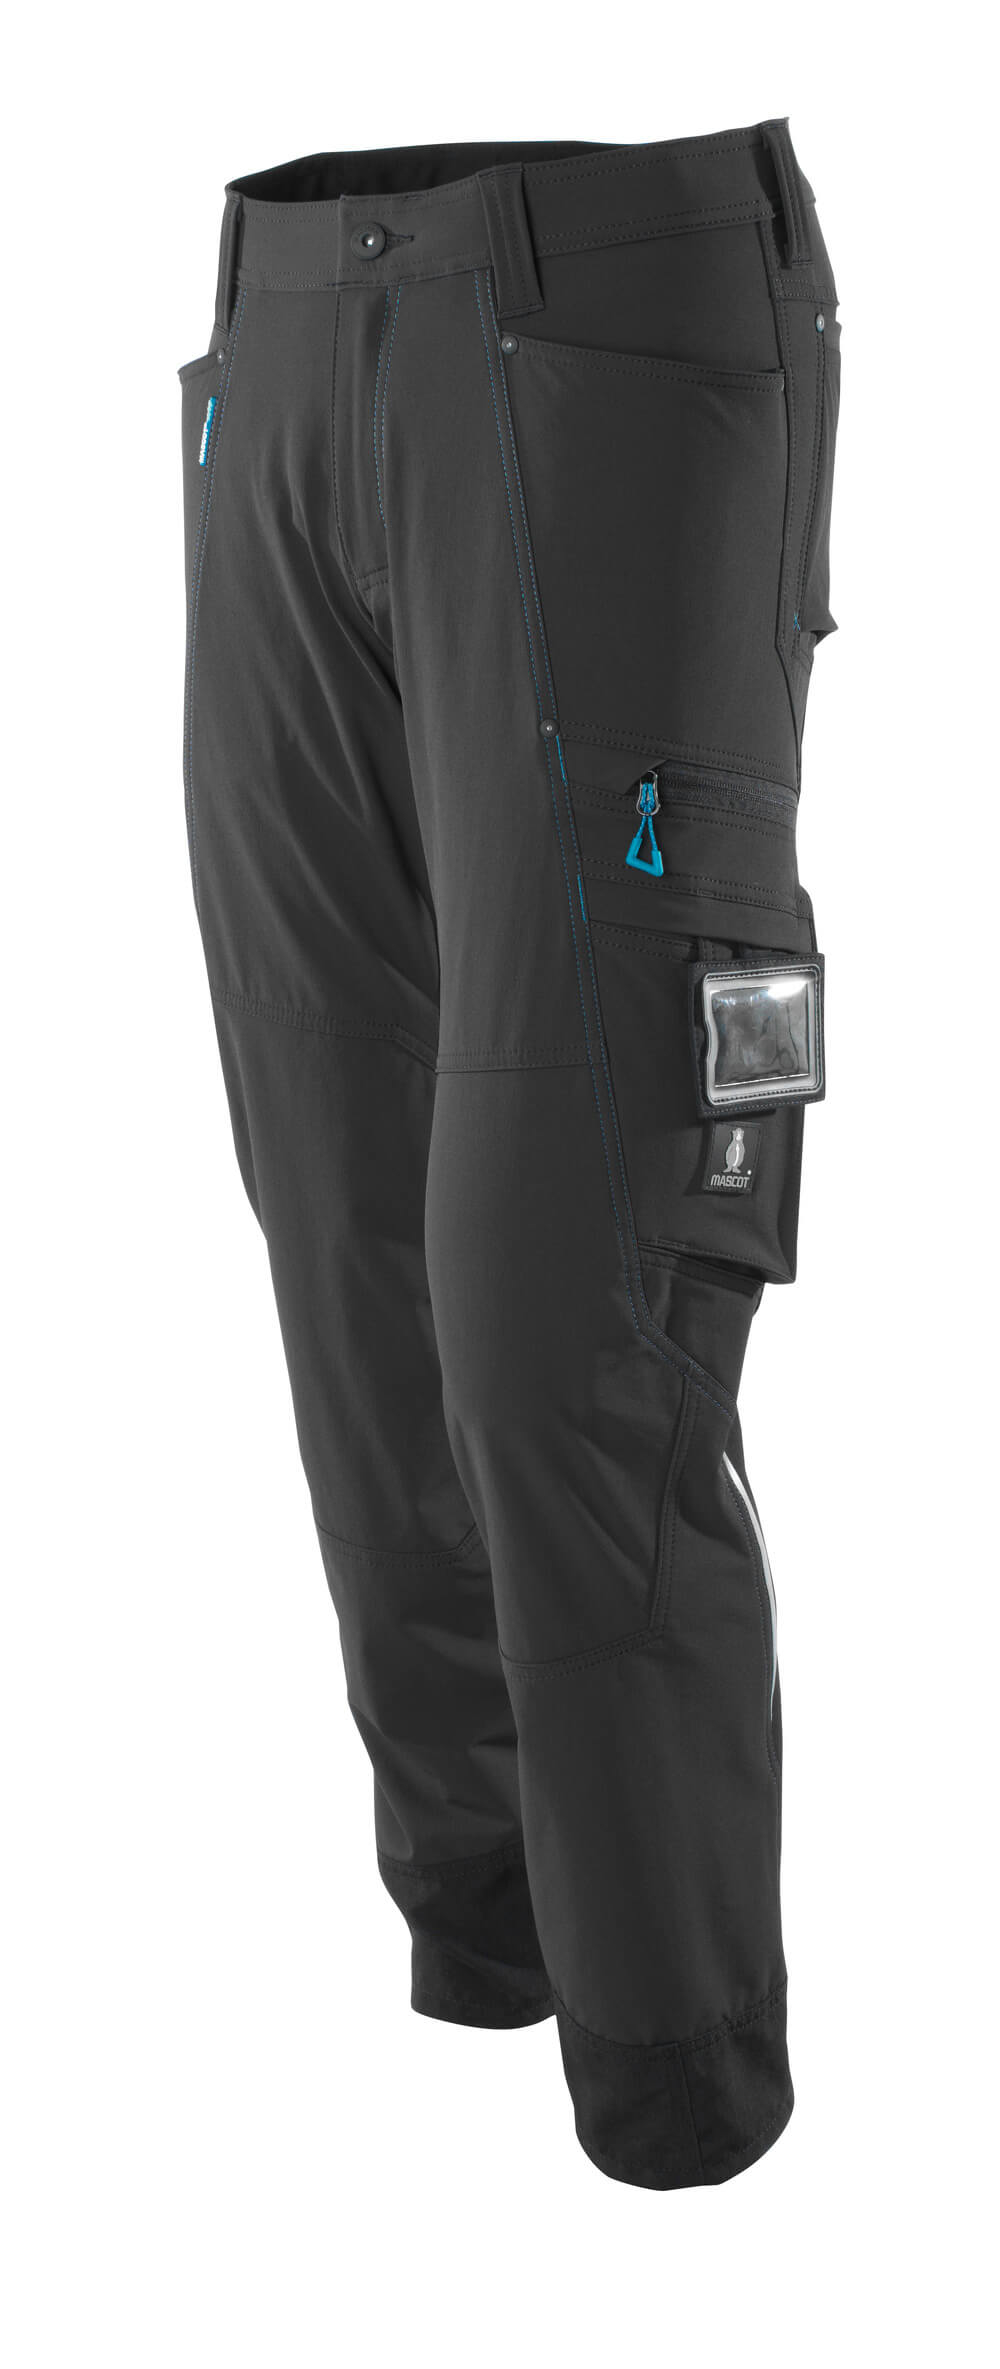 Trousers, stretch, lightweight